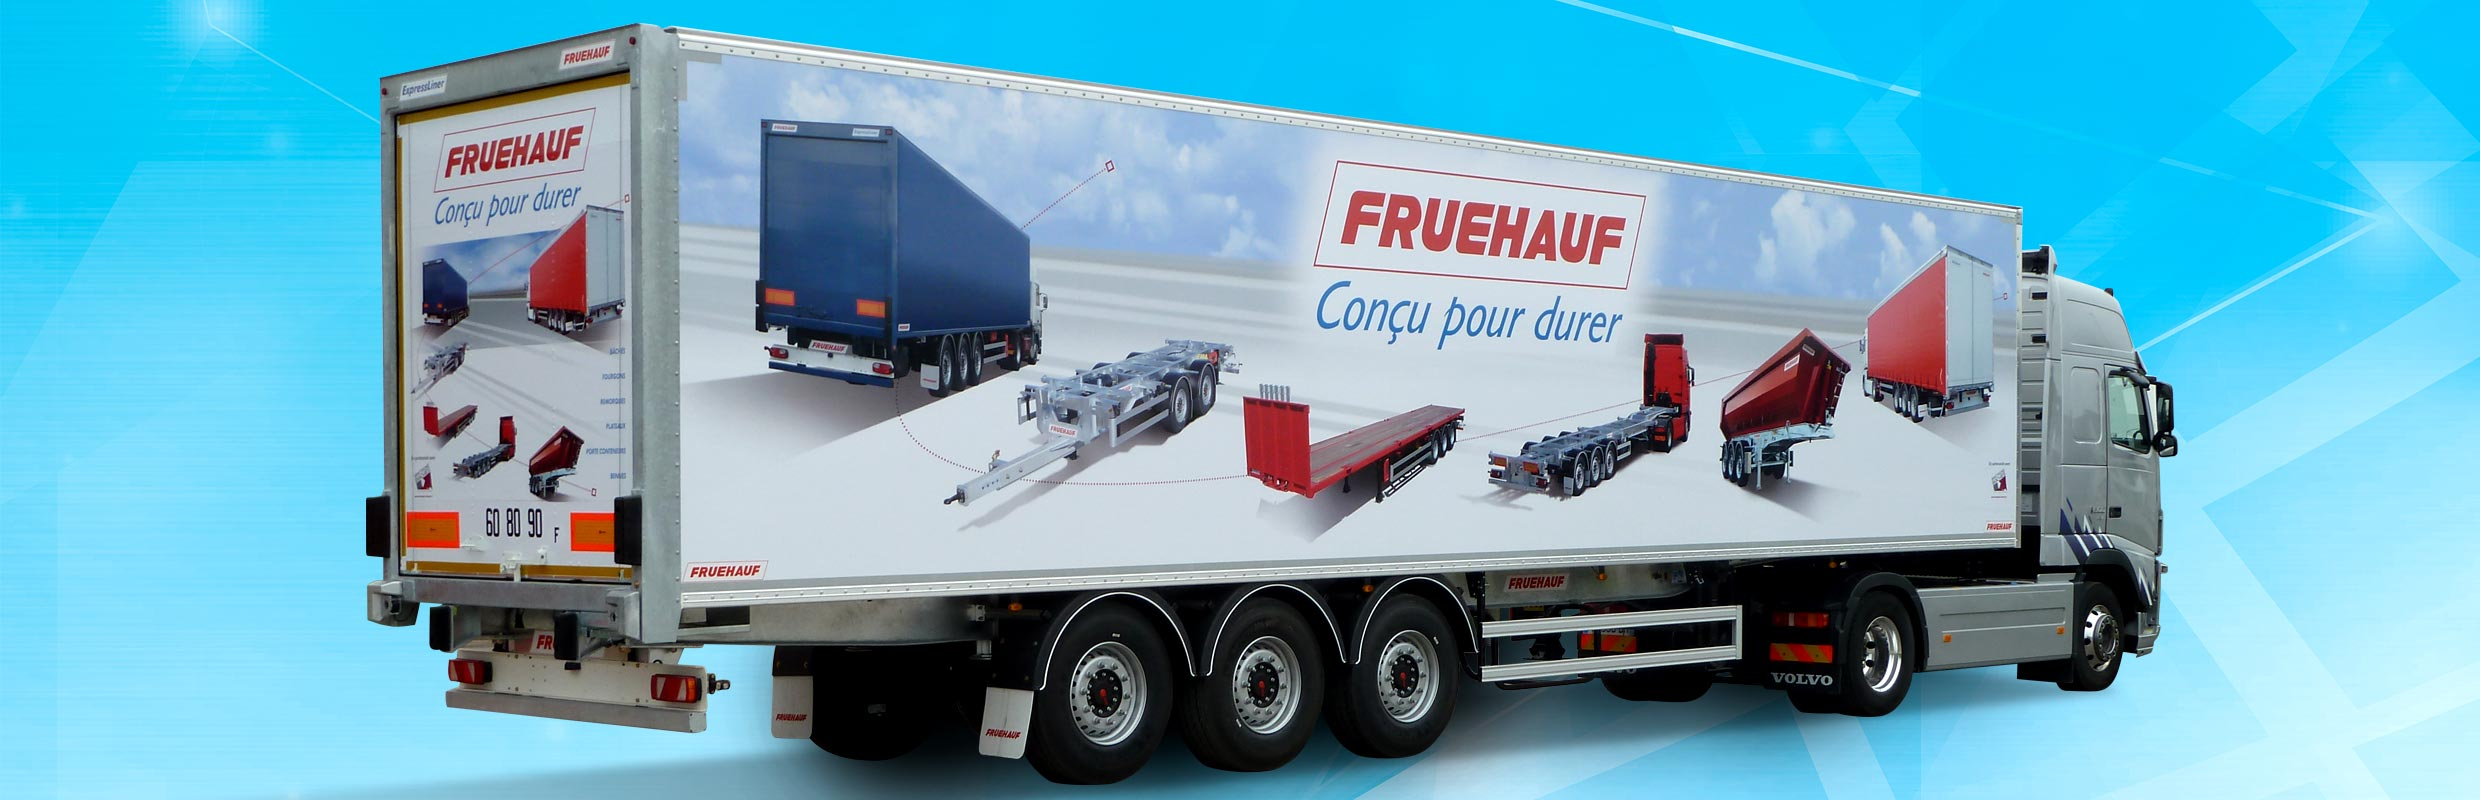 Fruehauf-fourgons-messagerie